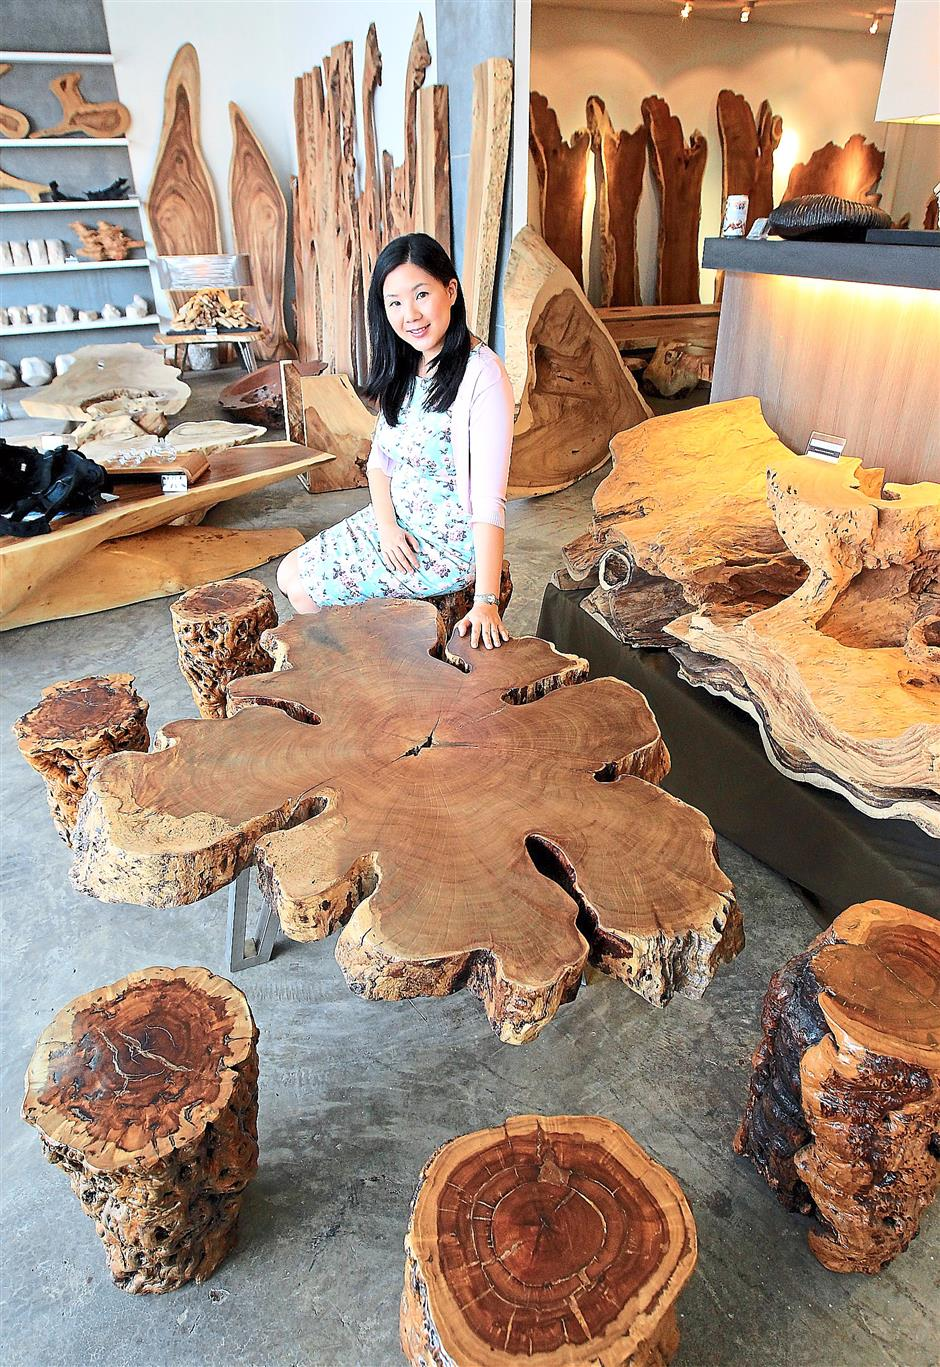 Nature in the home: Joey Woo, business partner and wife of Art of Tree founder Jeffrey Yang, with a floral-shaped coffee table. ?– Photos by IBRAHIM MOHTAR/The Star